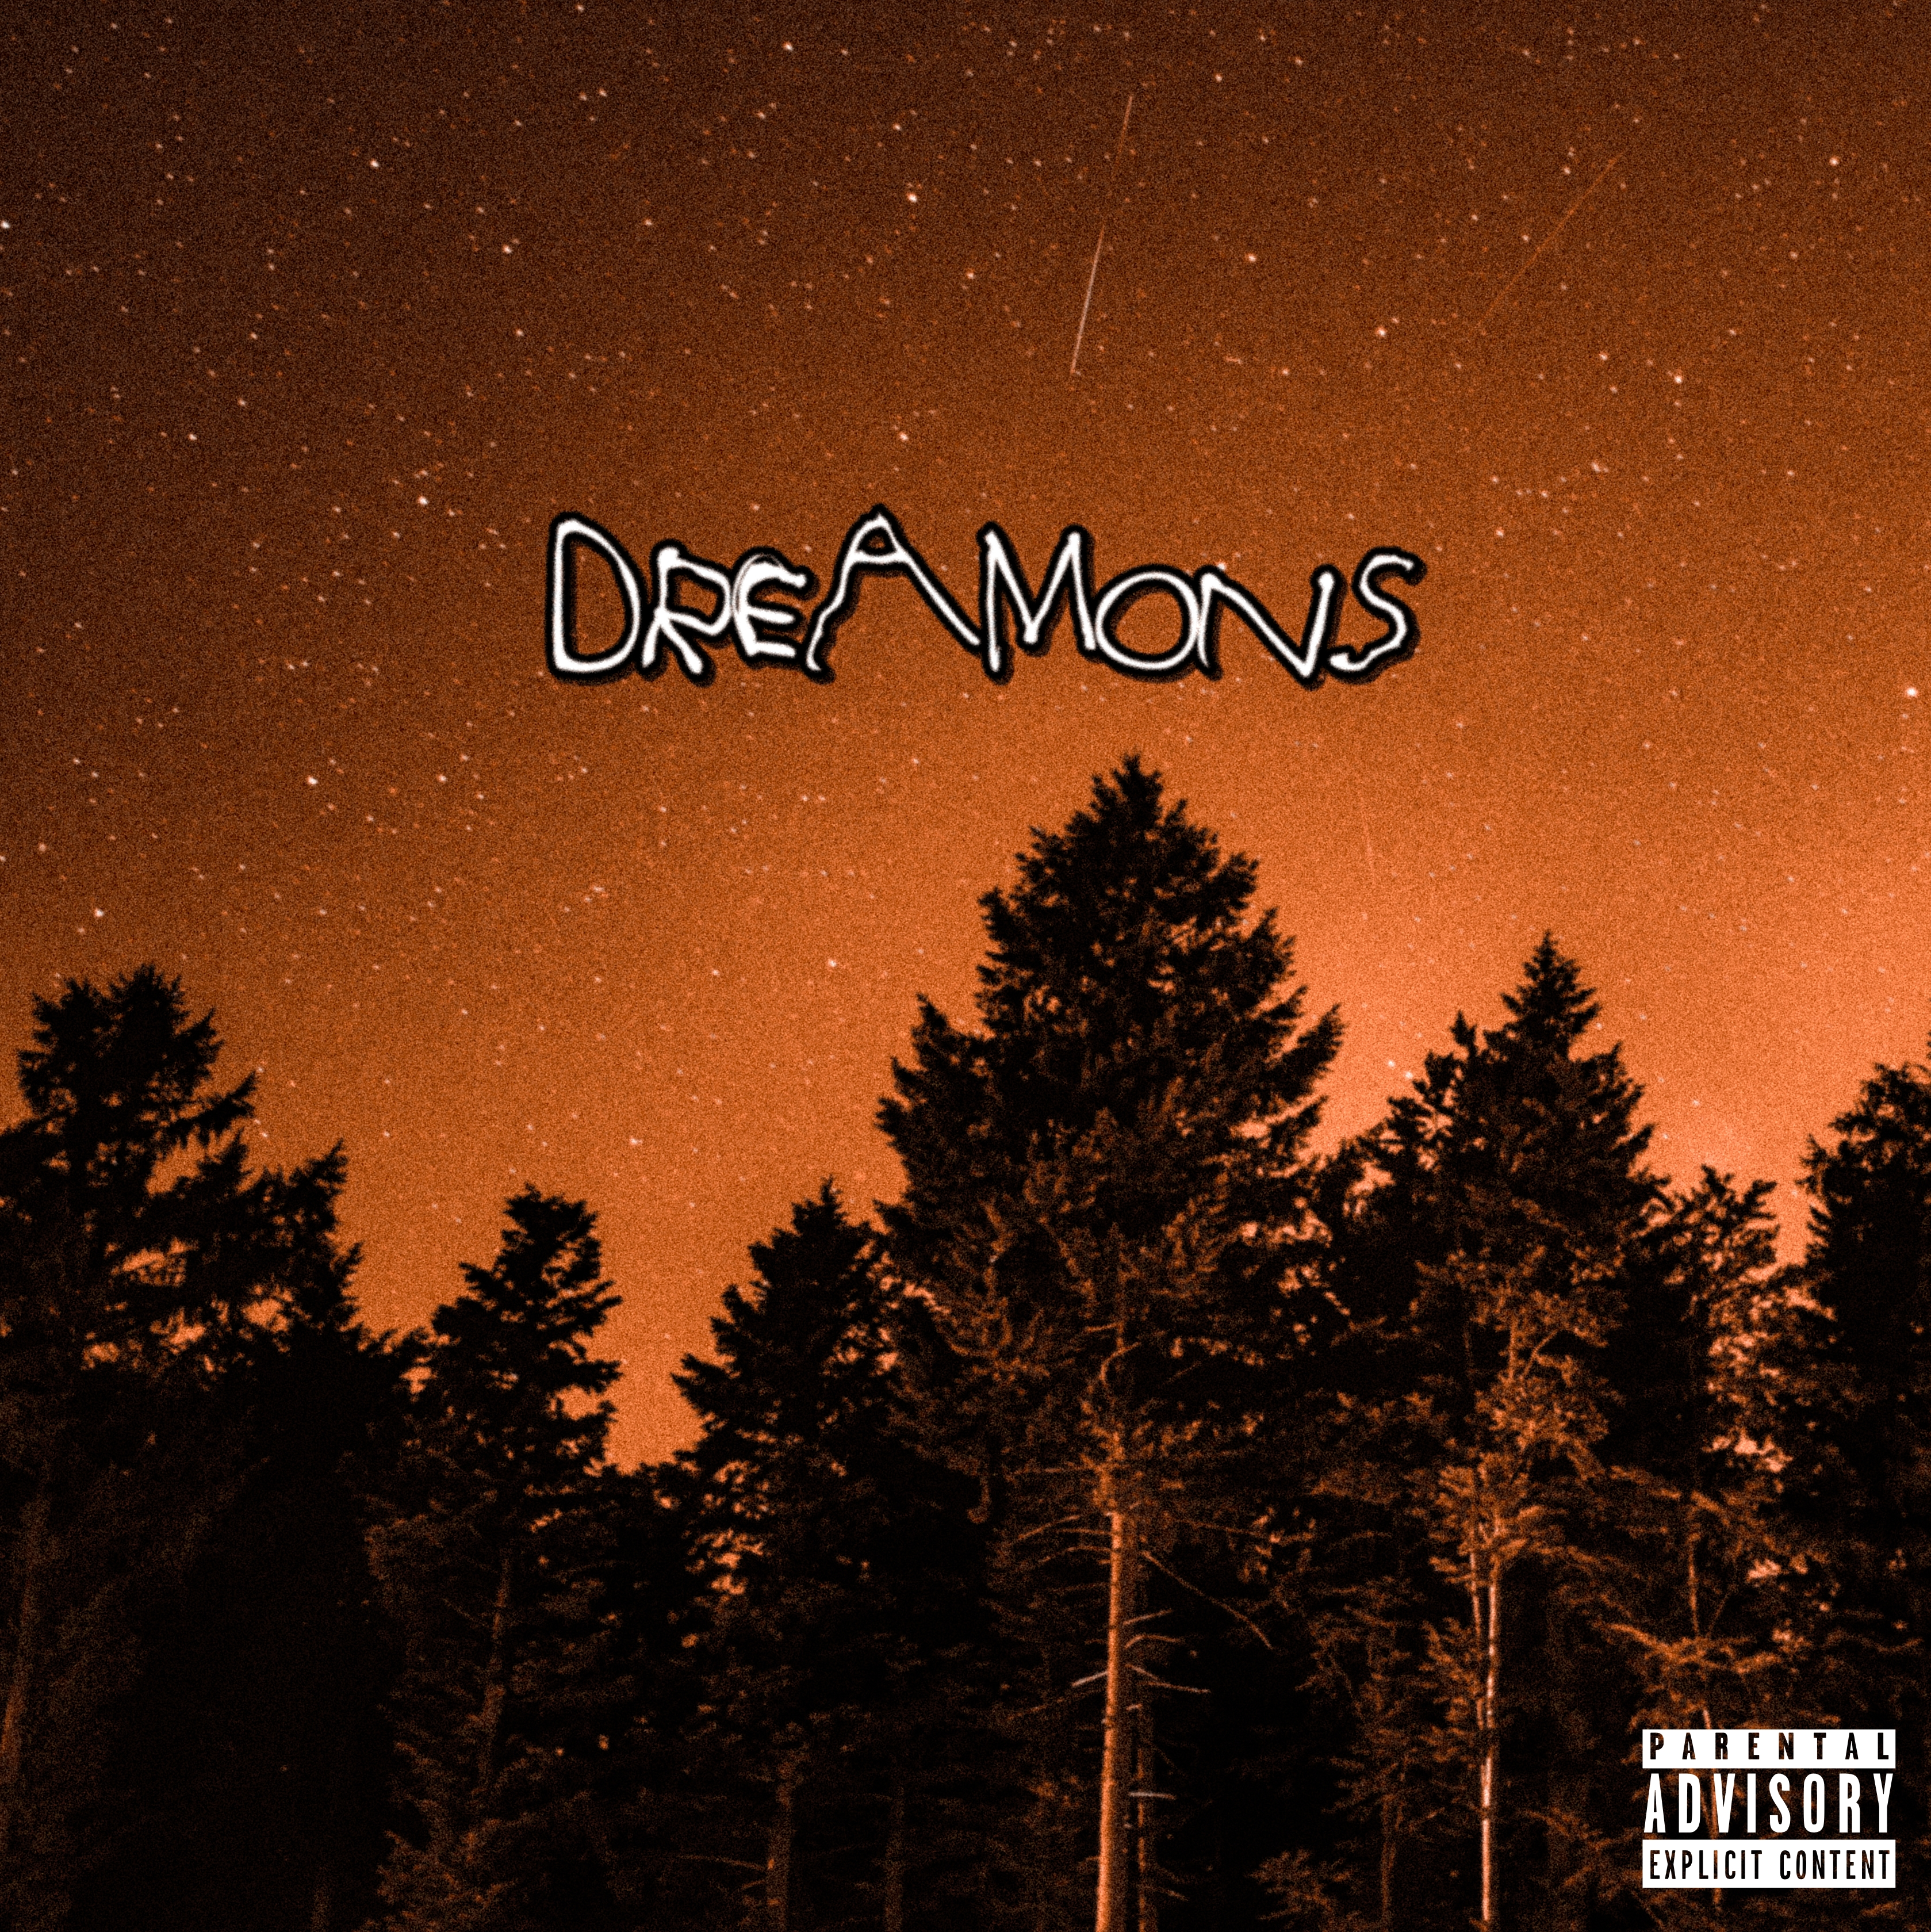 Cover Art & Logos for Music, Including Songs, Albums, Mixtapes, etc! For Rappers, Singers, and DJs